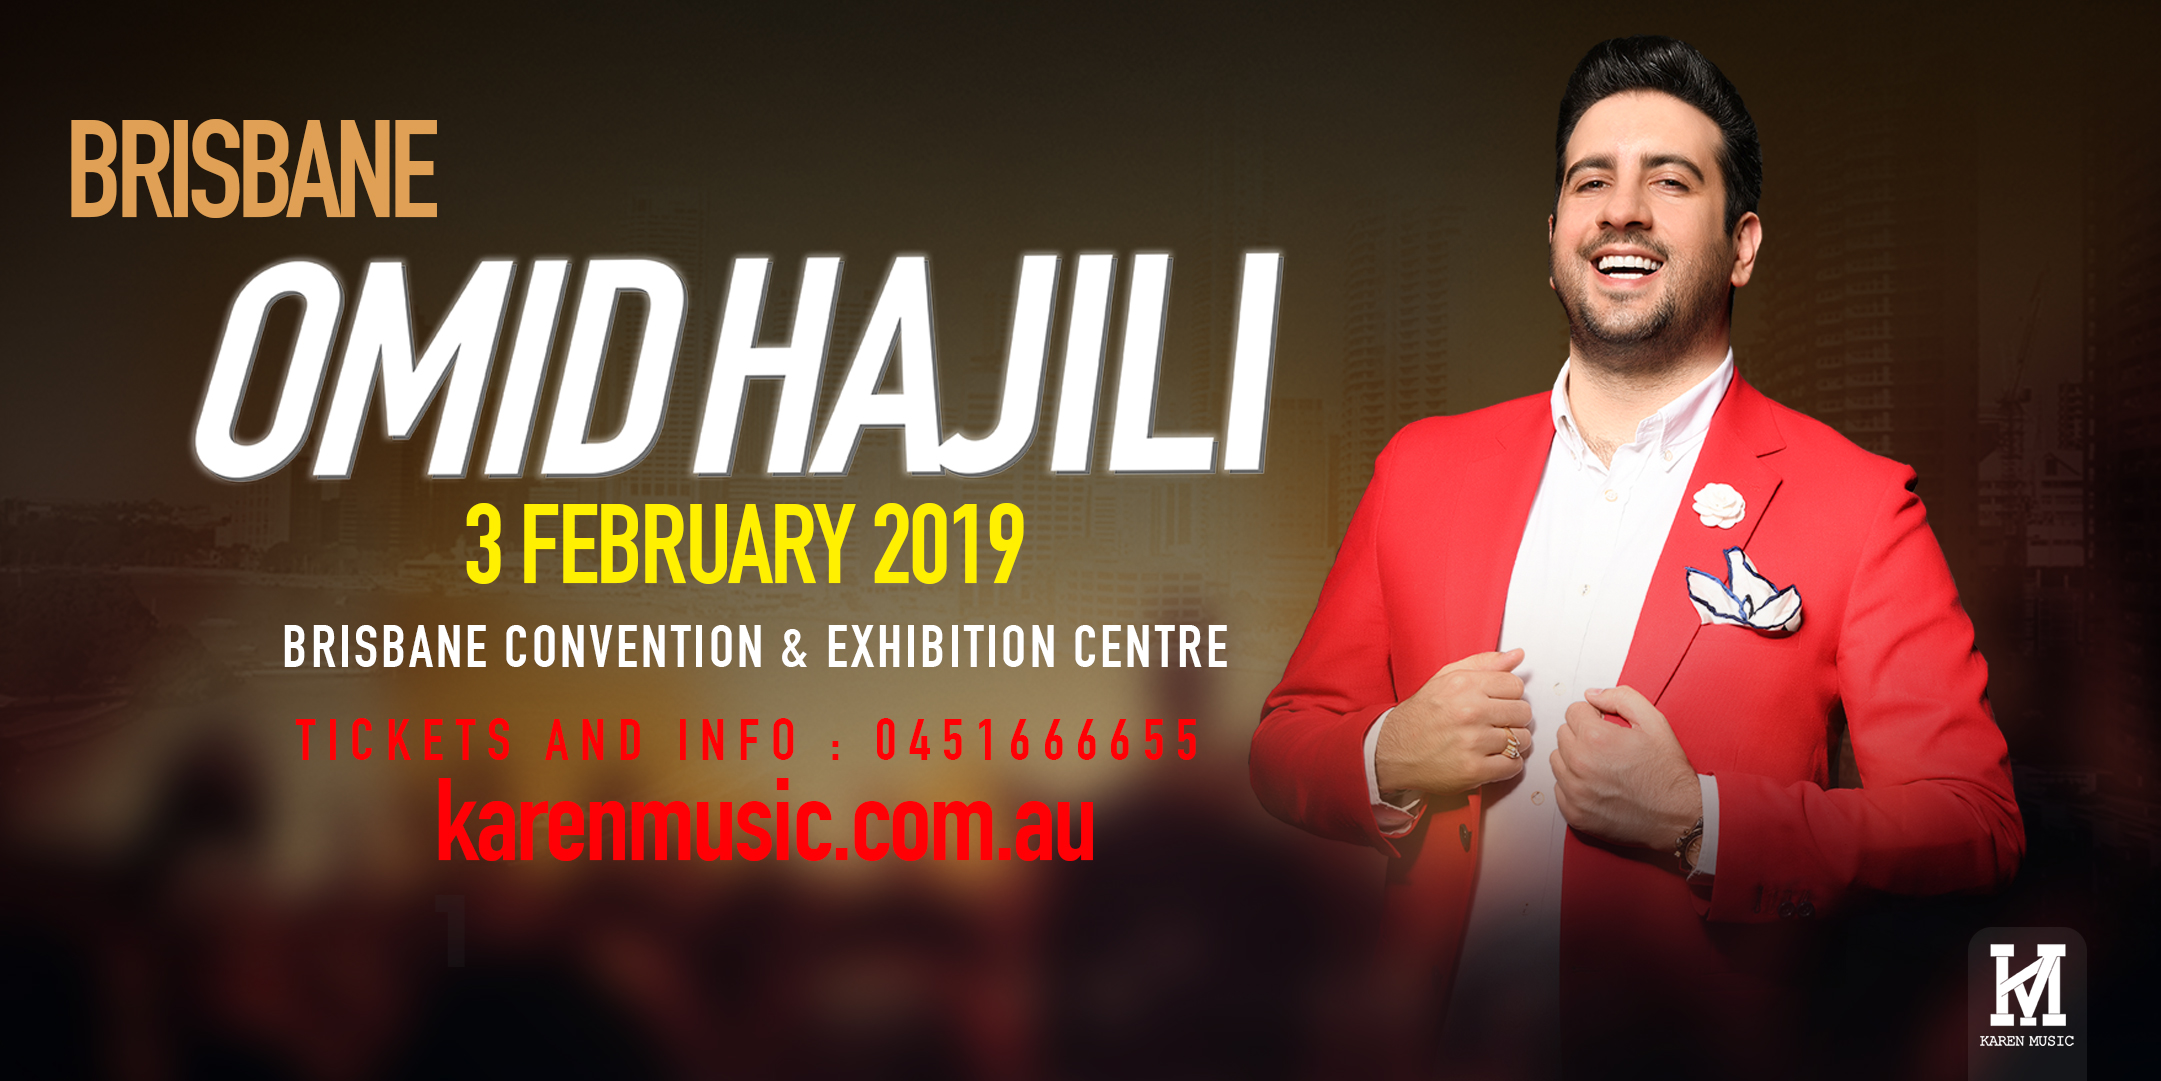 Tickets for Omid Hajili - Brisbane in South Brisbane from Ticketbooth